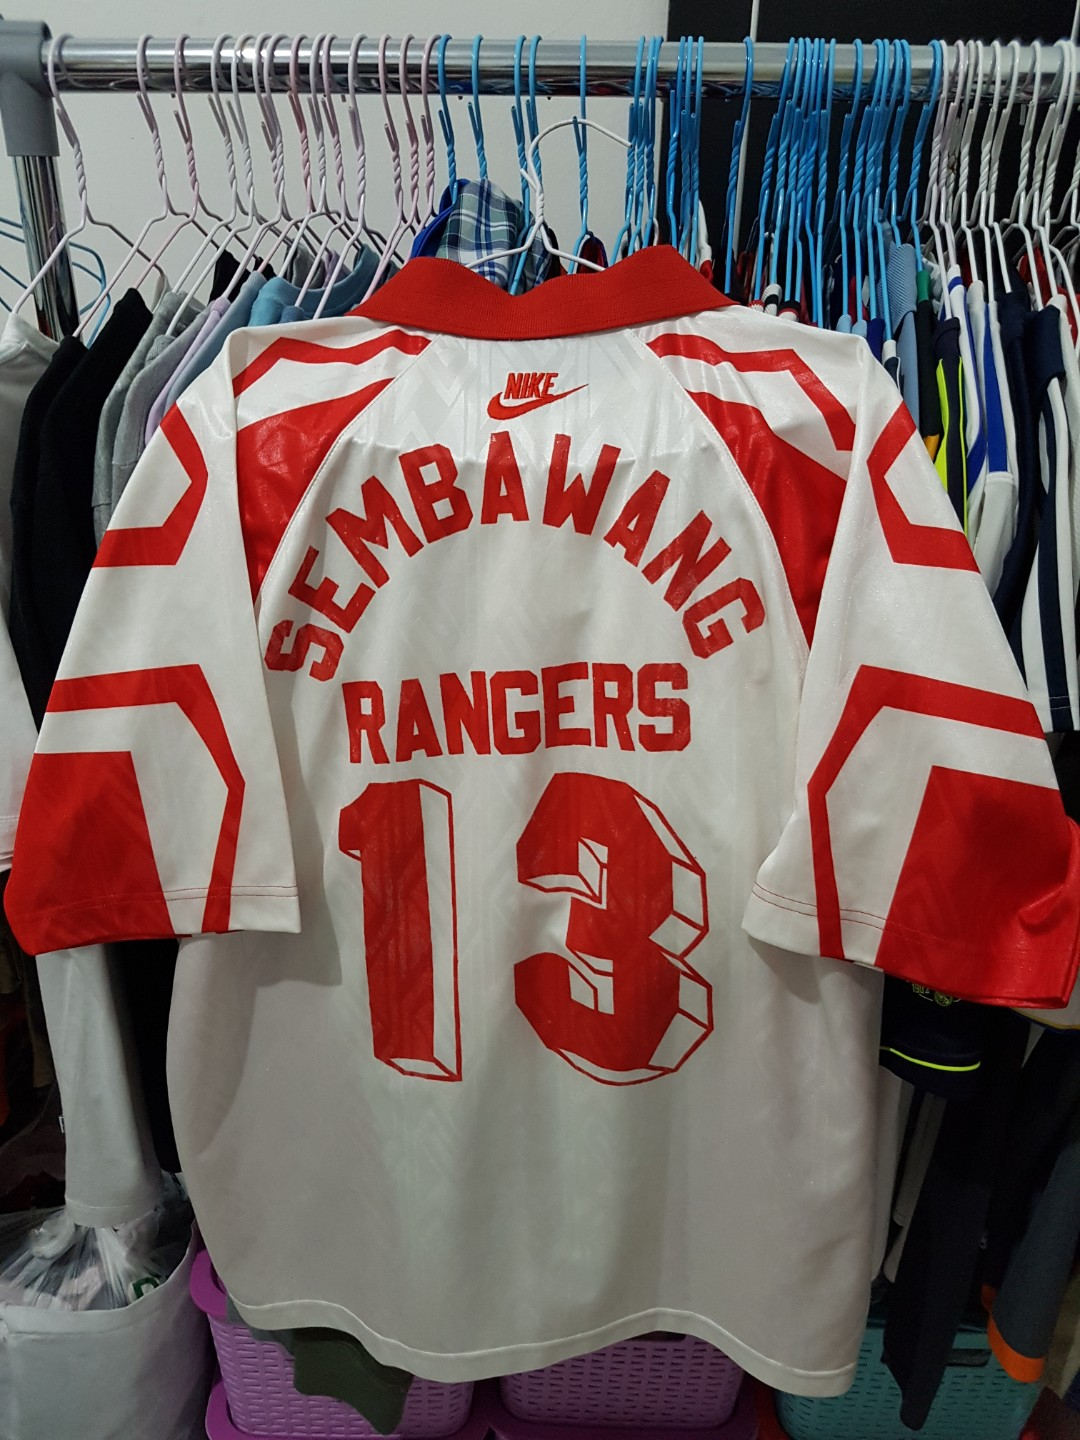 26e5b55d298 Authentic sembawang rangers FC jersey, Sports, Sports Apparel on Carousell